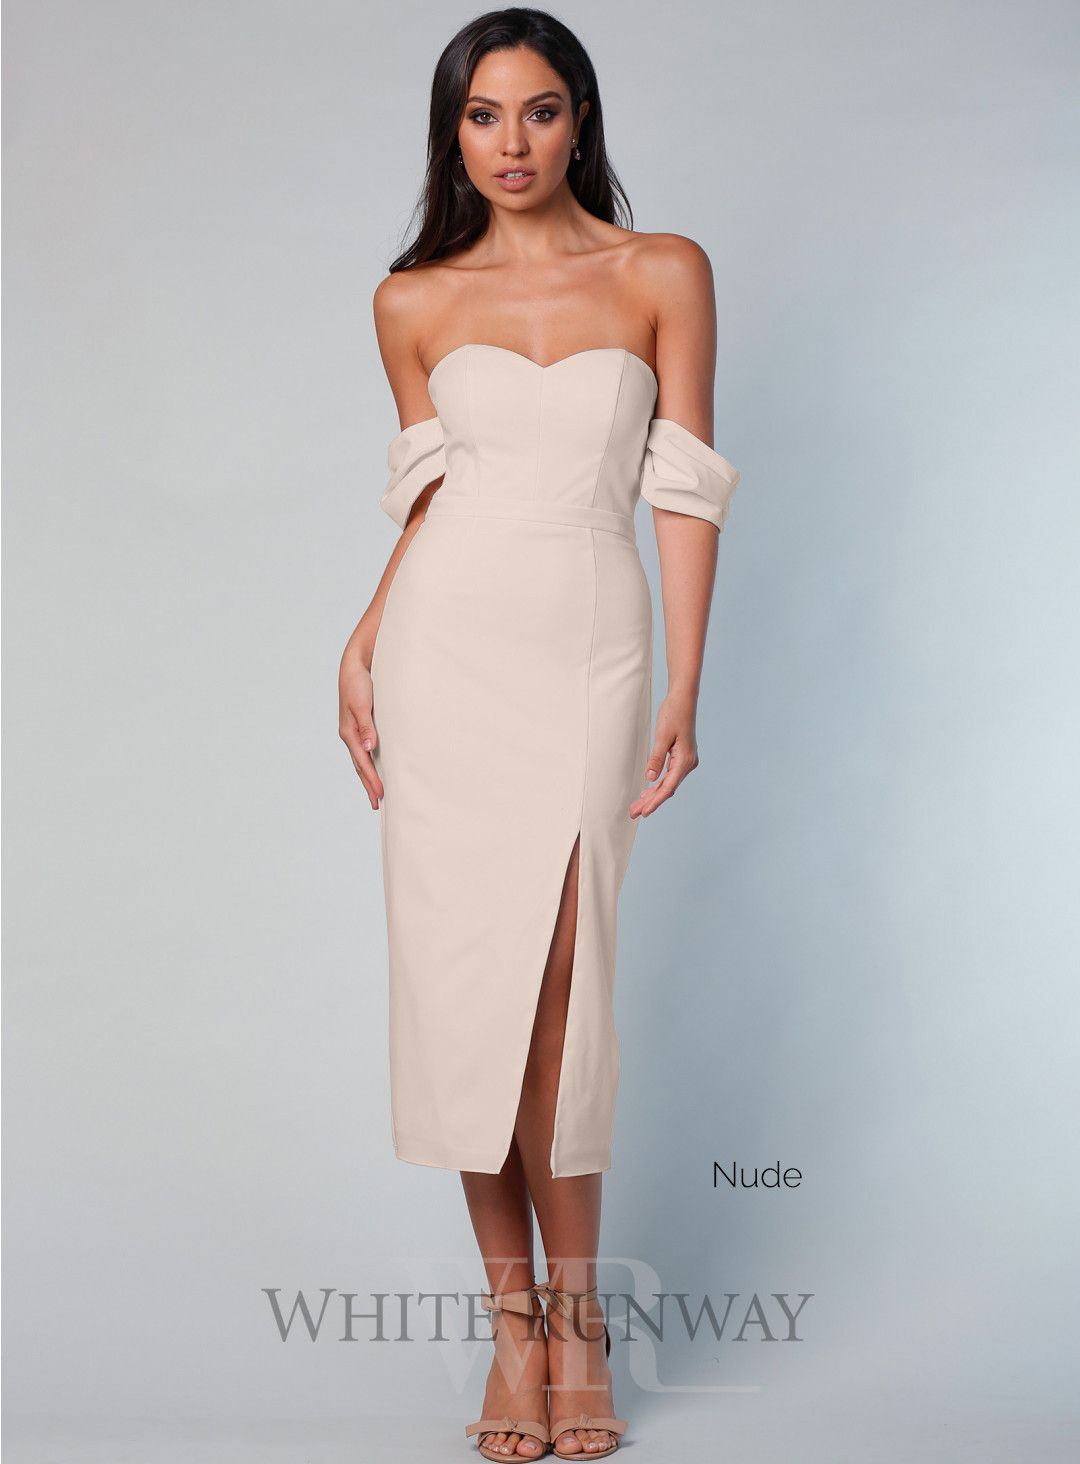 a6021b8eb5 Cassie Cocktail Dress. An elegant midi length dress by Samantha Rose. A  strapless style featuring detachable sleeves and side split in skirt.